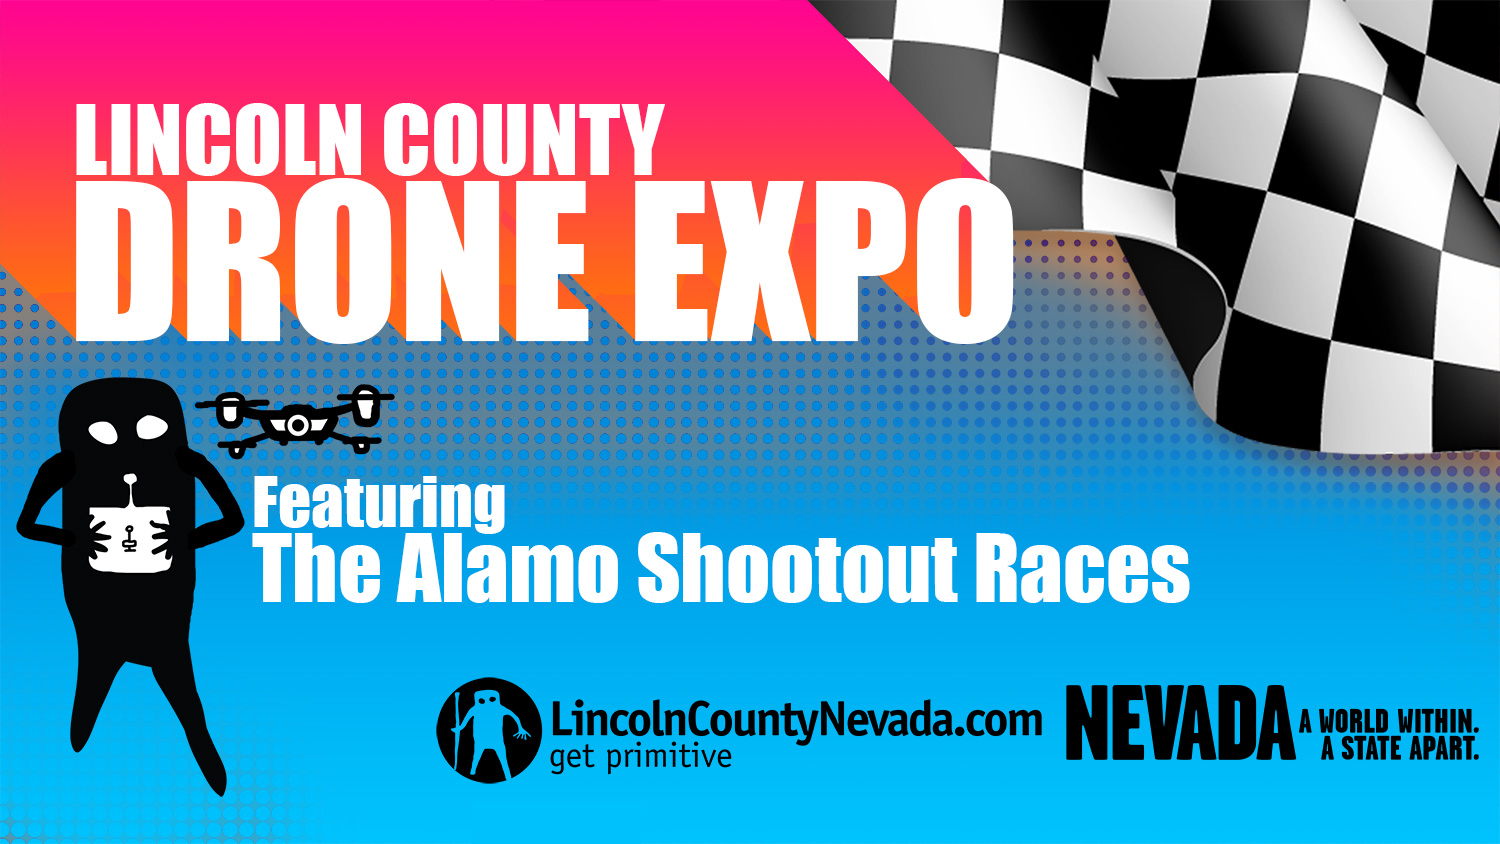 Lincoln County Drone Expo